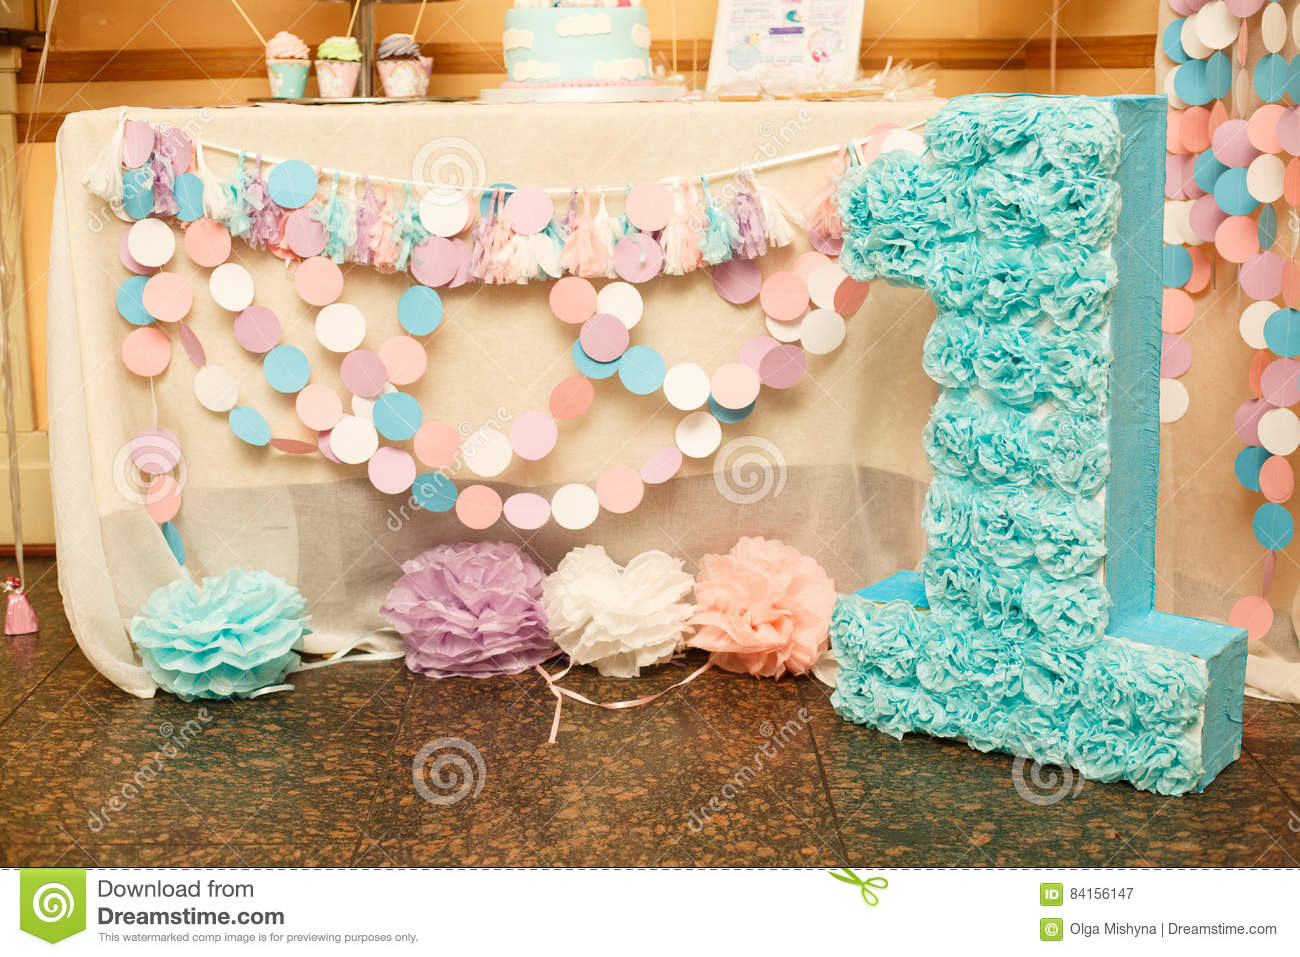 Birthday Party For Child One Years Old Pink Mint And White Colors Stylish Decorations Little Girl On Her First